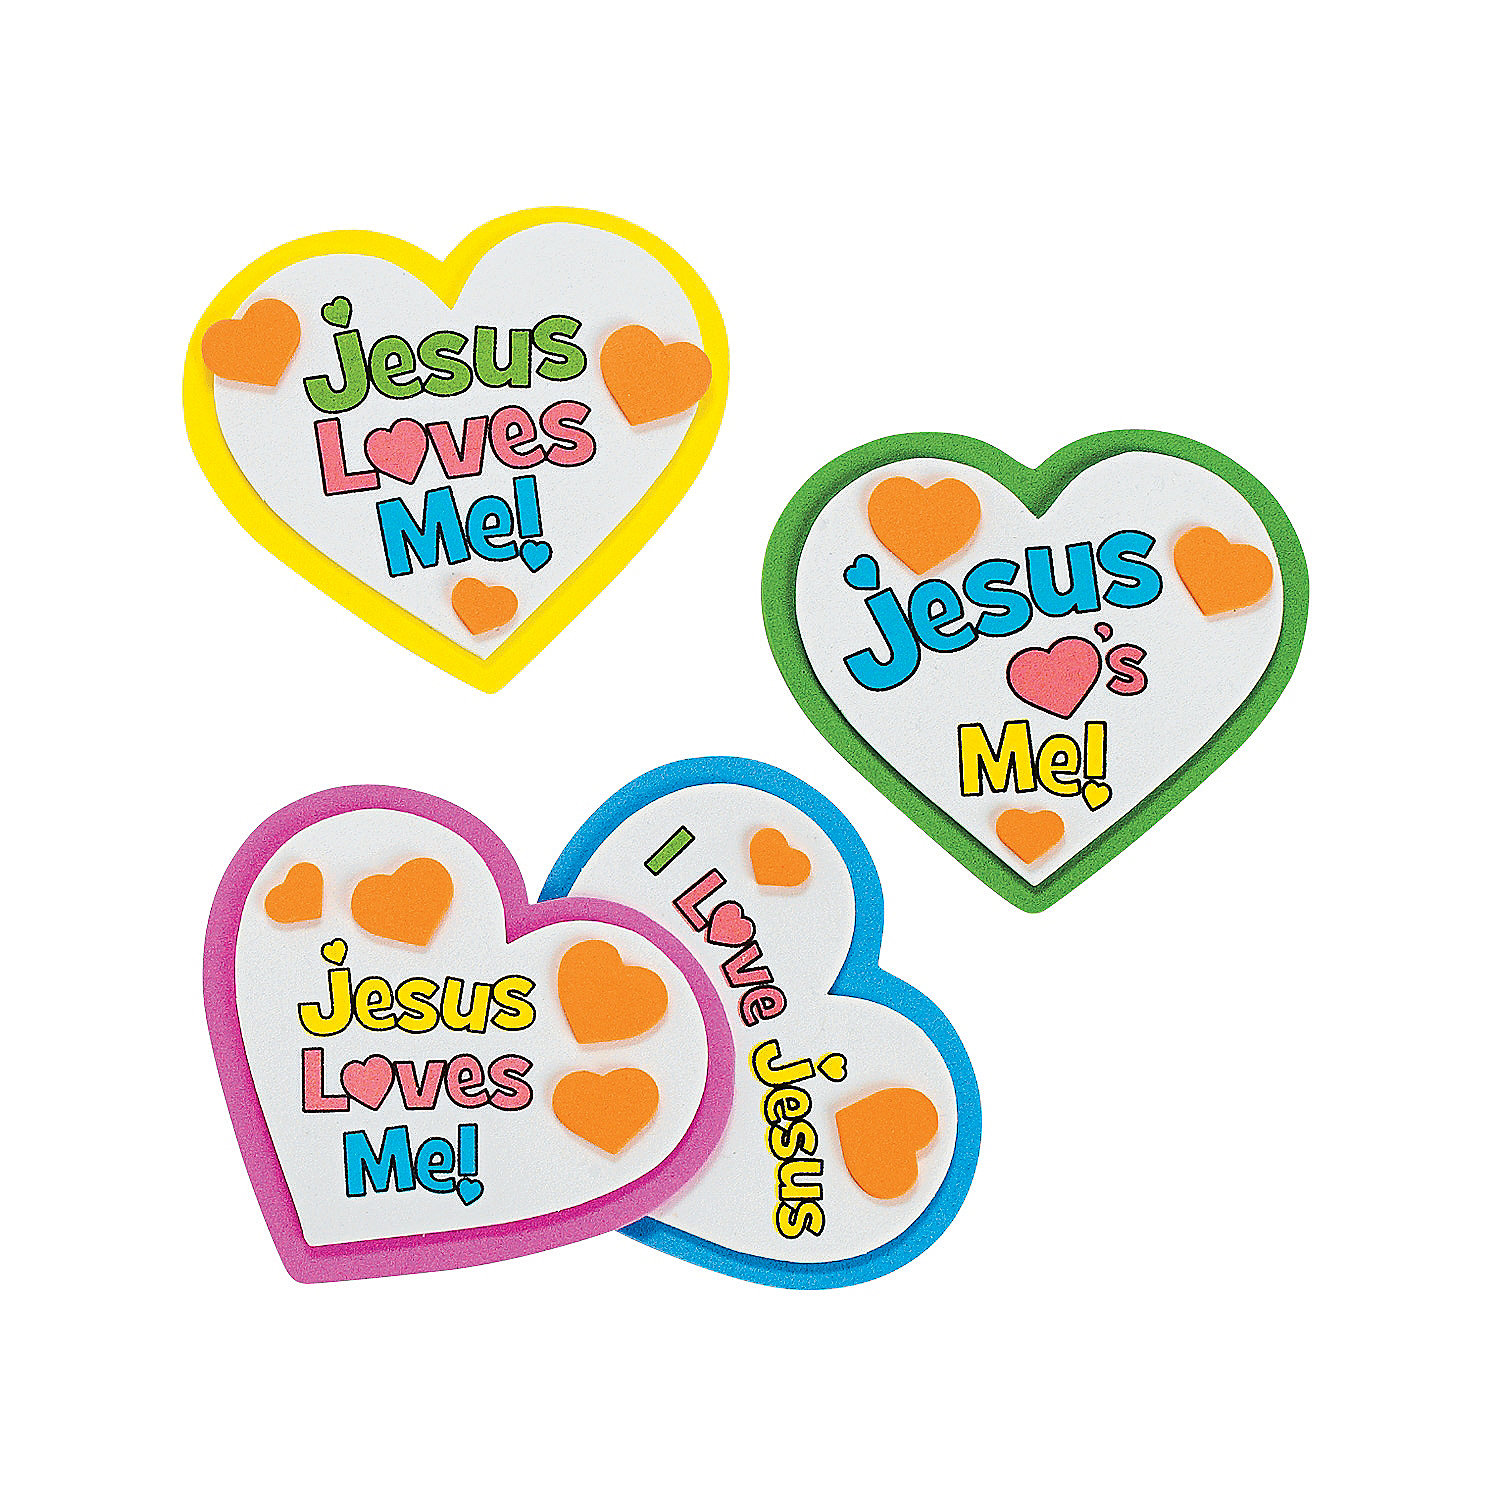 Jesus Loves Me Crafts For Toddlers